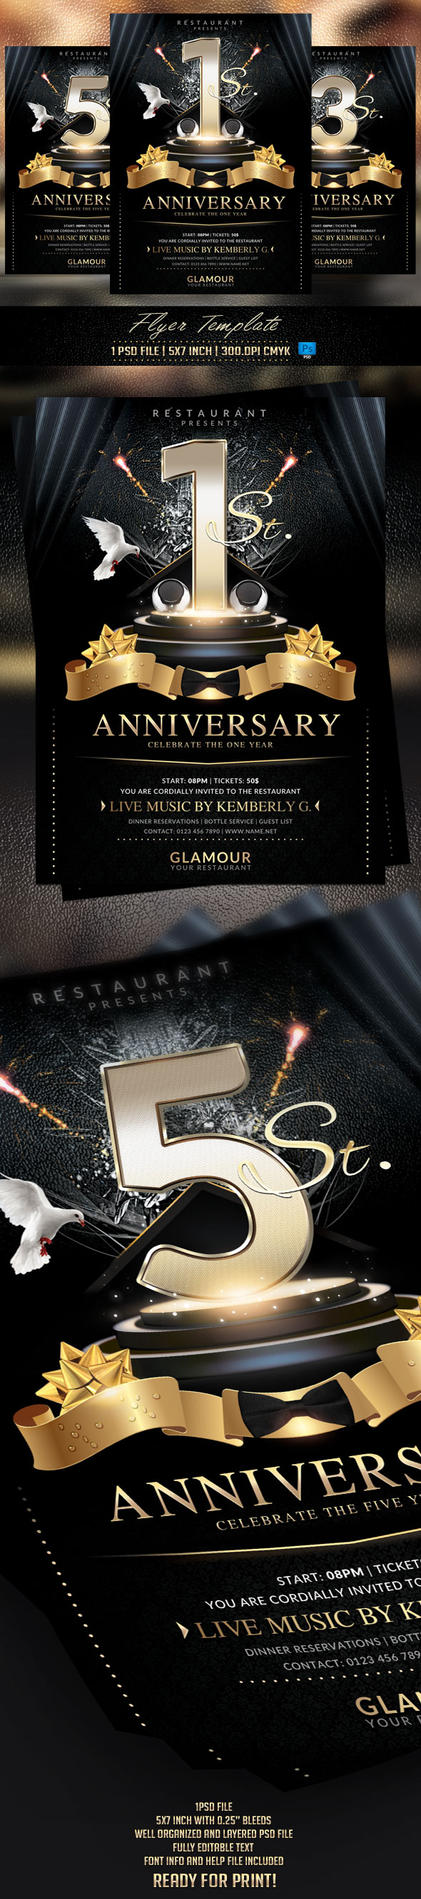 Anniversary Flyer Template by BriellDesign